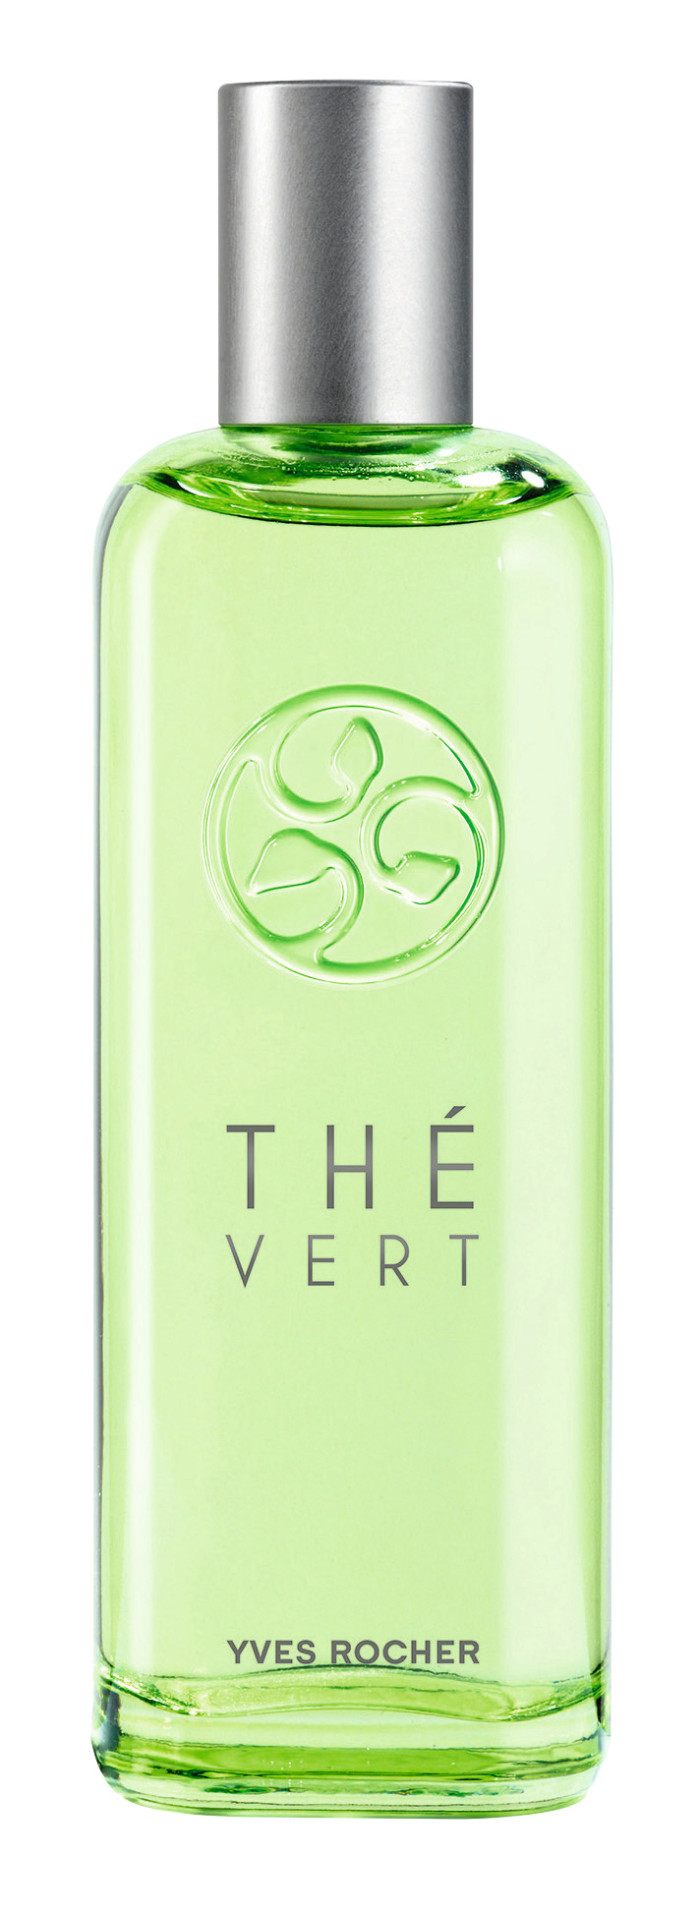 the vert yves rocher perfume a new fragrance for women